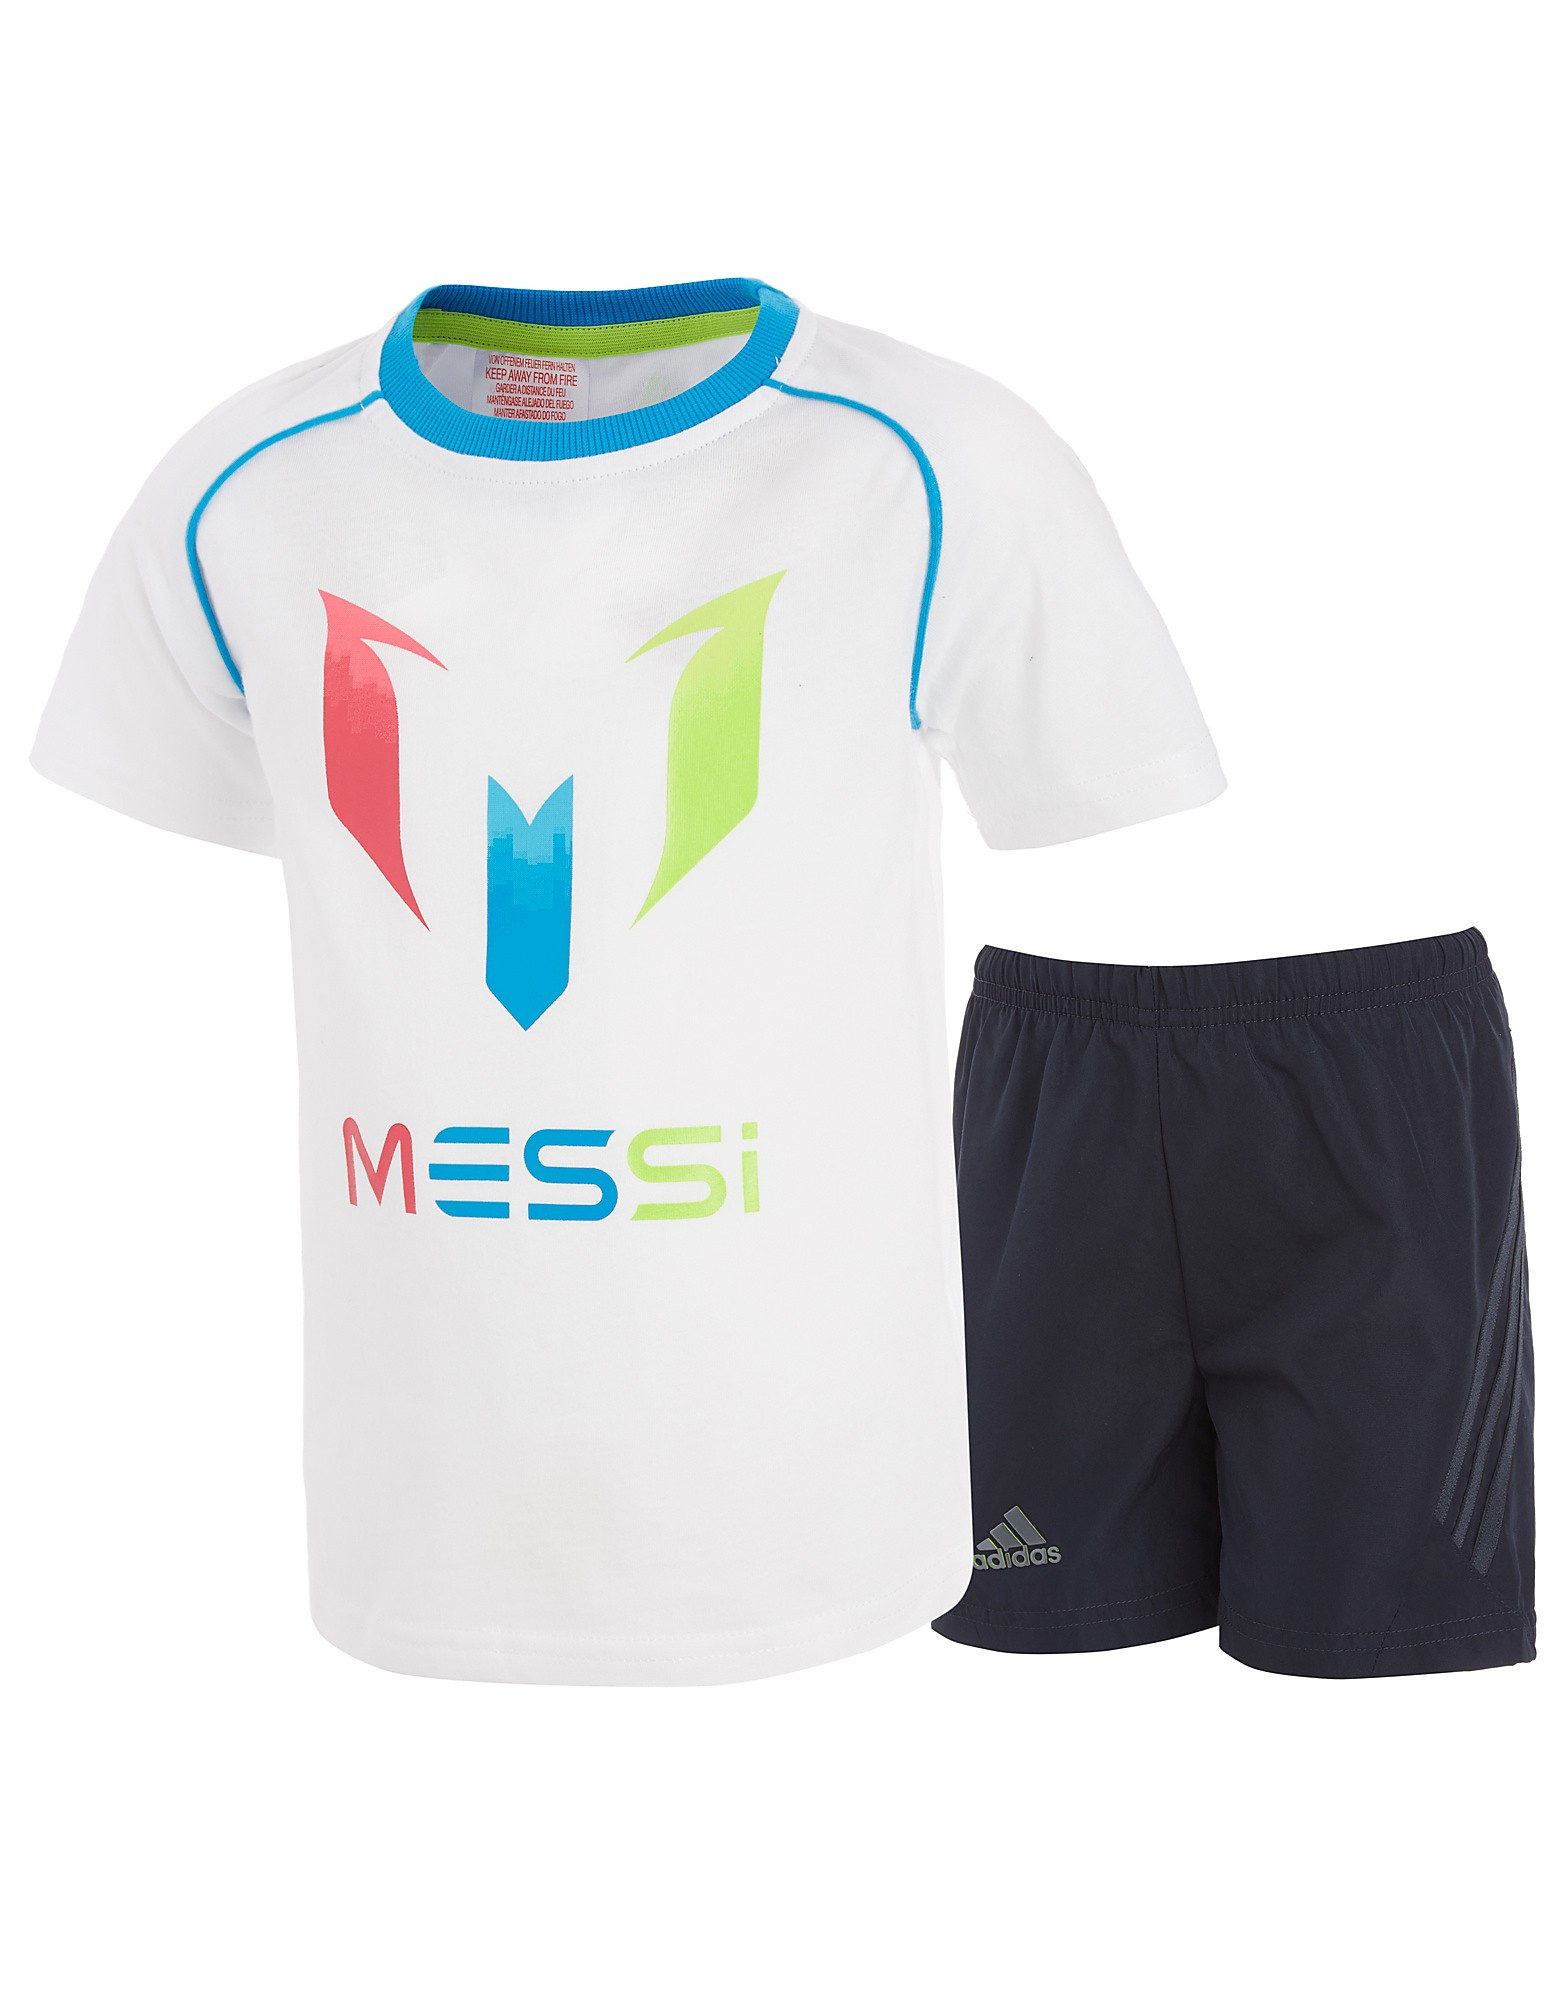 Adidas Messi T-Shirt/Shorts Set Infants product image